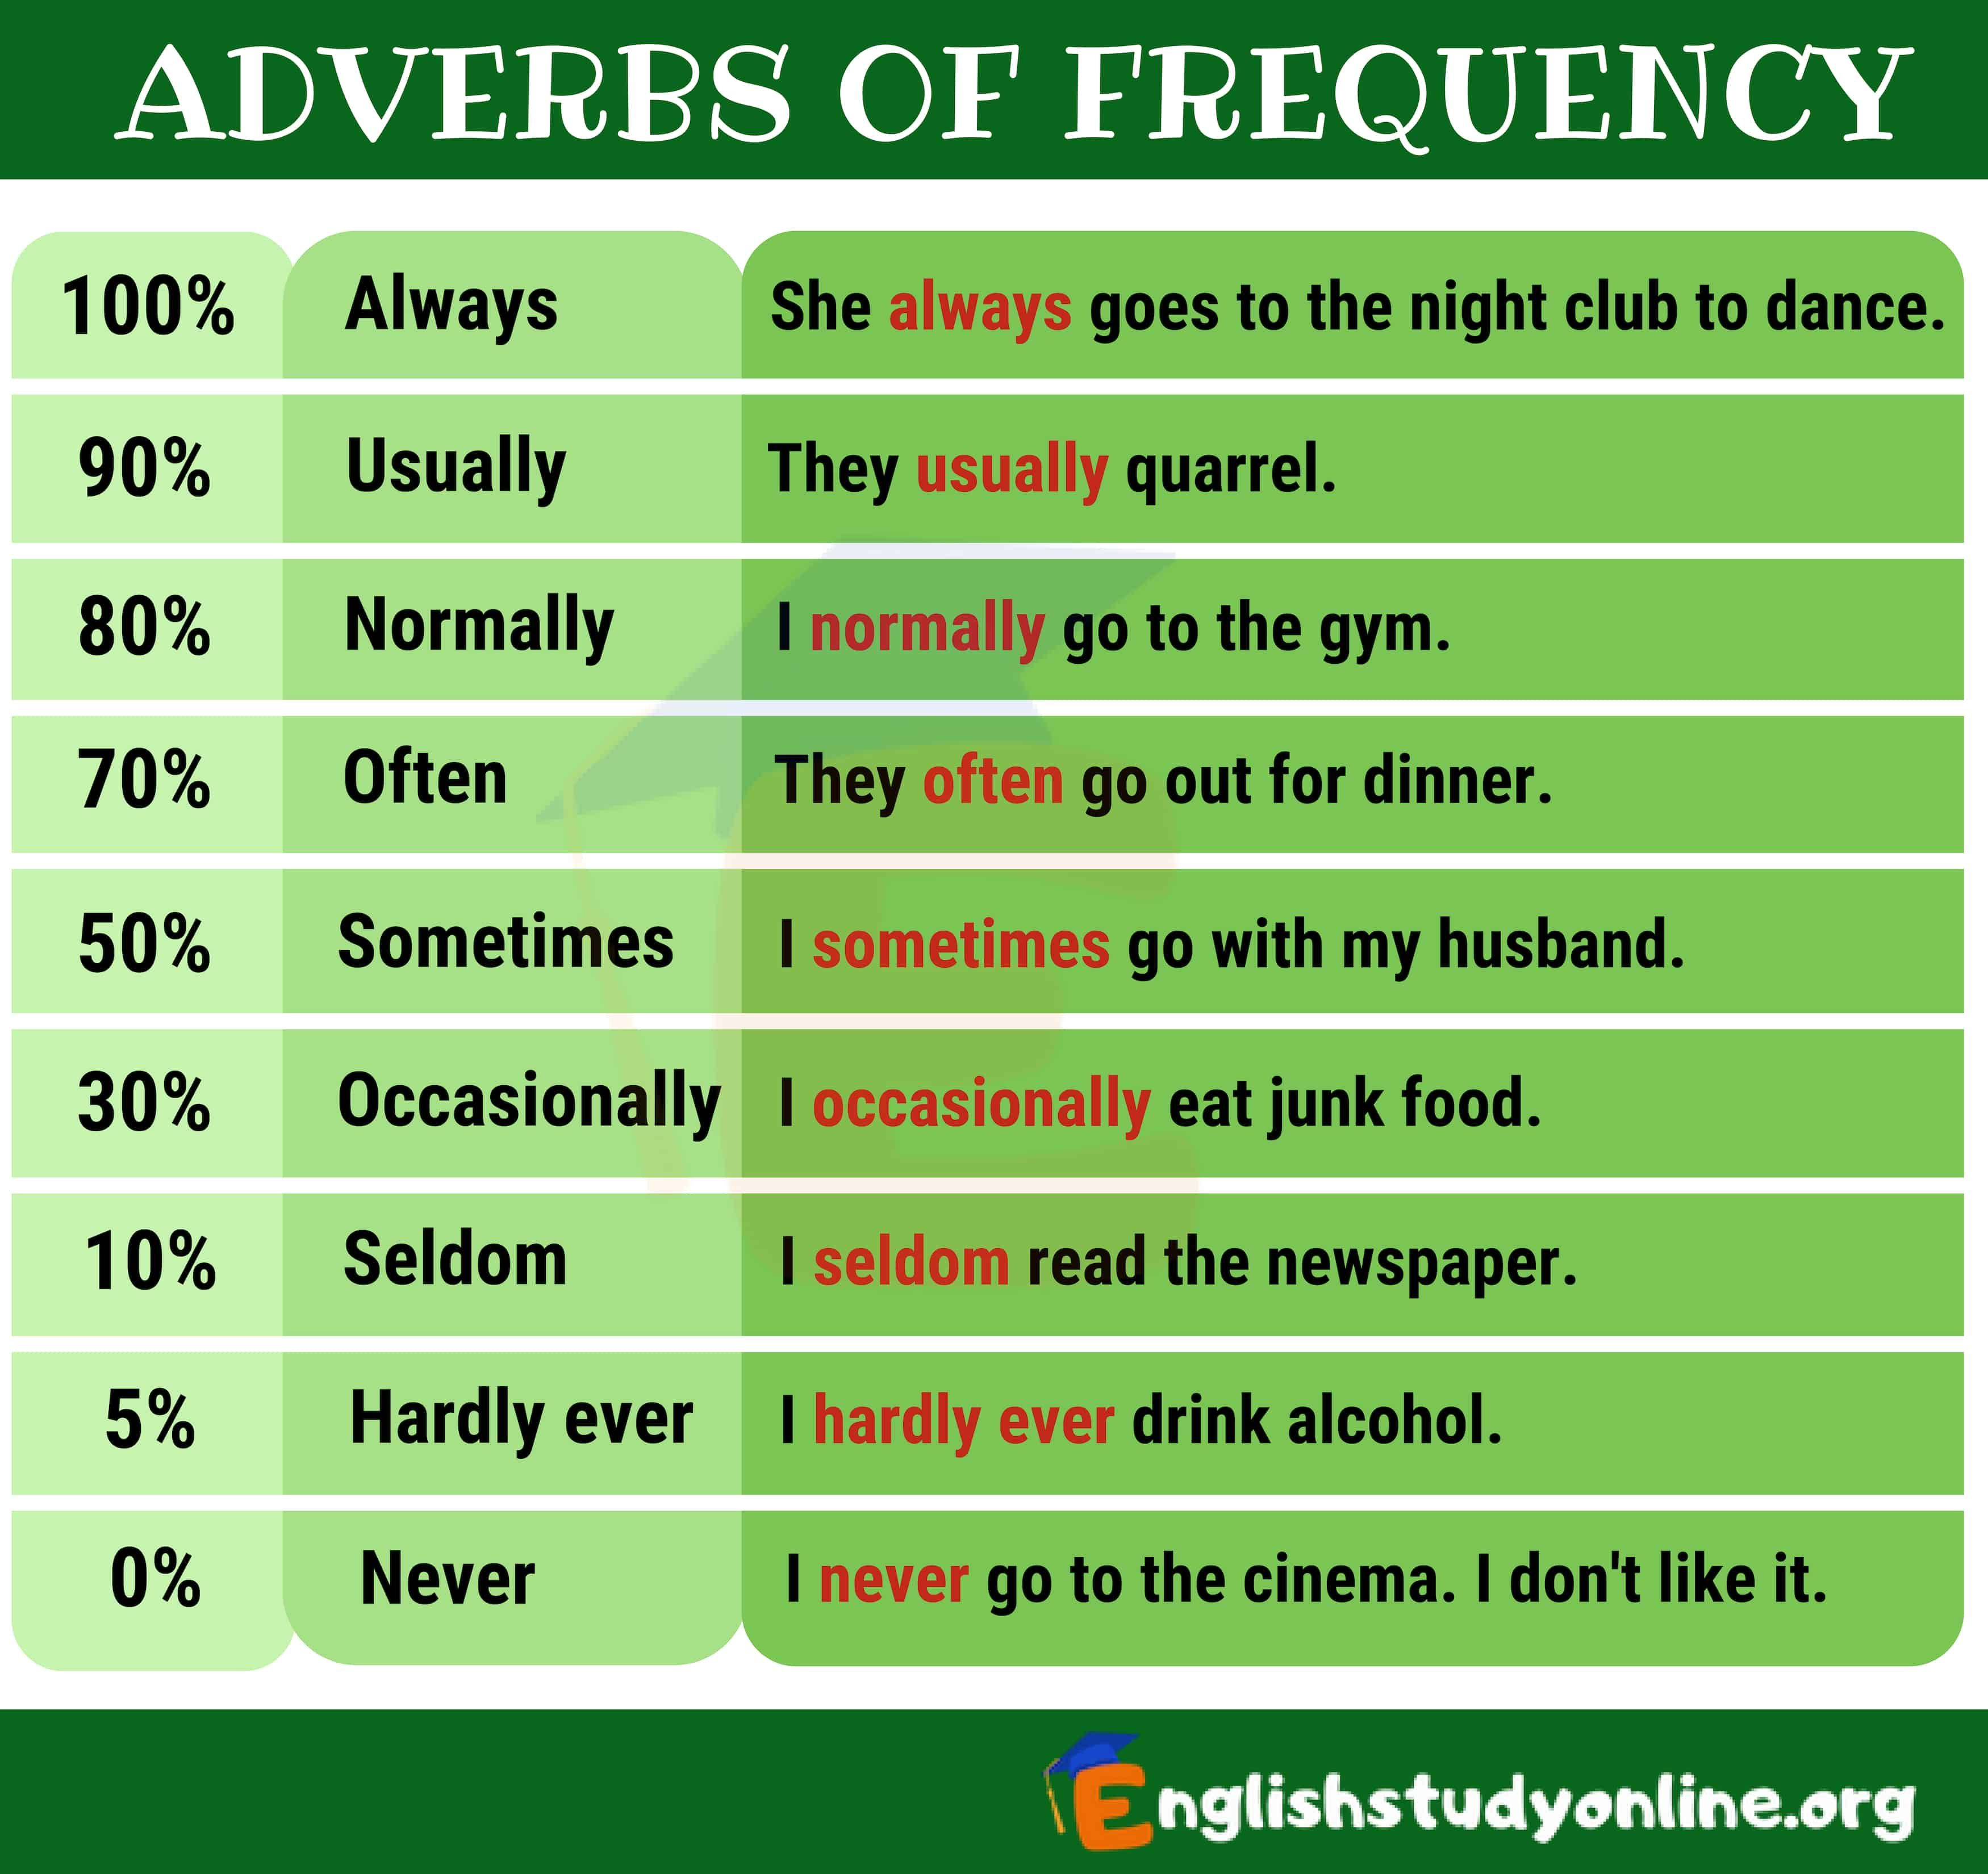 Adverbs Of Frequency In English English Study Online Adverbs Overused Words English Study [ 3300 x 3500 Pixel ]